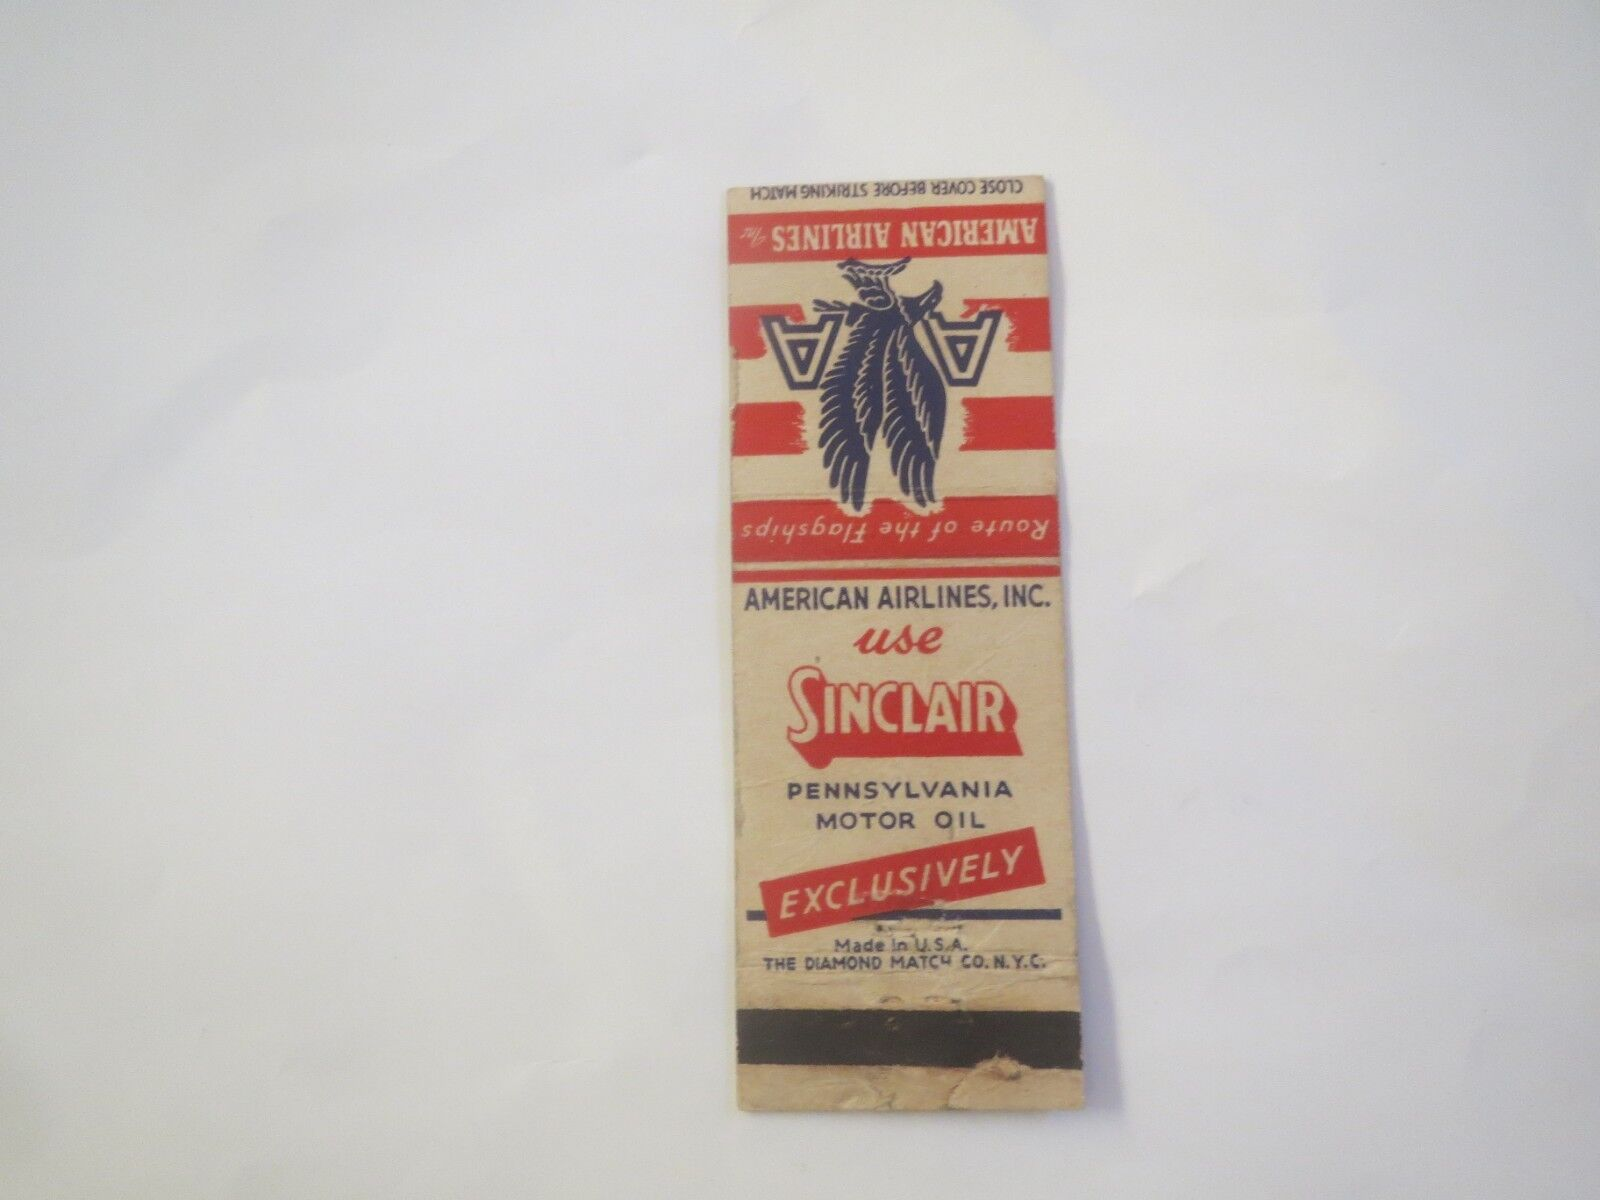 AMERICAN AIRLINES SINCLAIR EXCLUSIVELY MOTOR OIL VINTAGE PROMO MATCHBOOK COVER